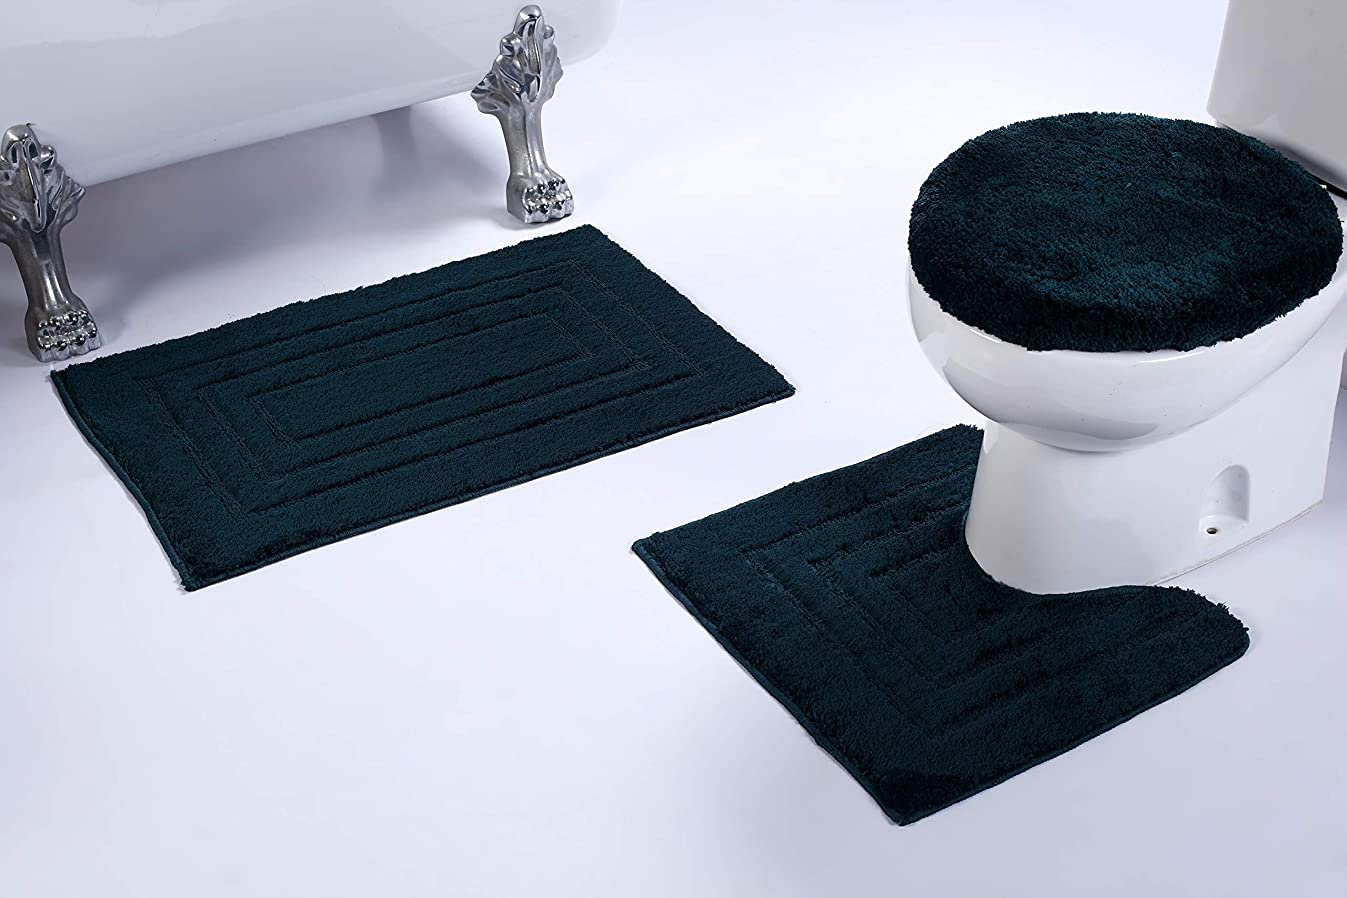 Fancy Linen 3pc Non-Slip Bath Mat Set with Rectangle Pattern Solid Hunter Green Bathroom U-Shaped Contour Rug, Mat and Toilet Lid Cover New # Bath 66